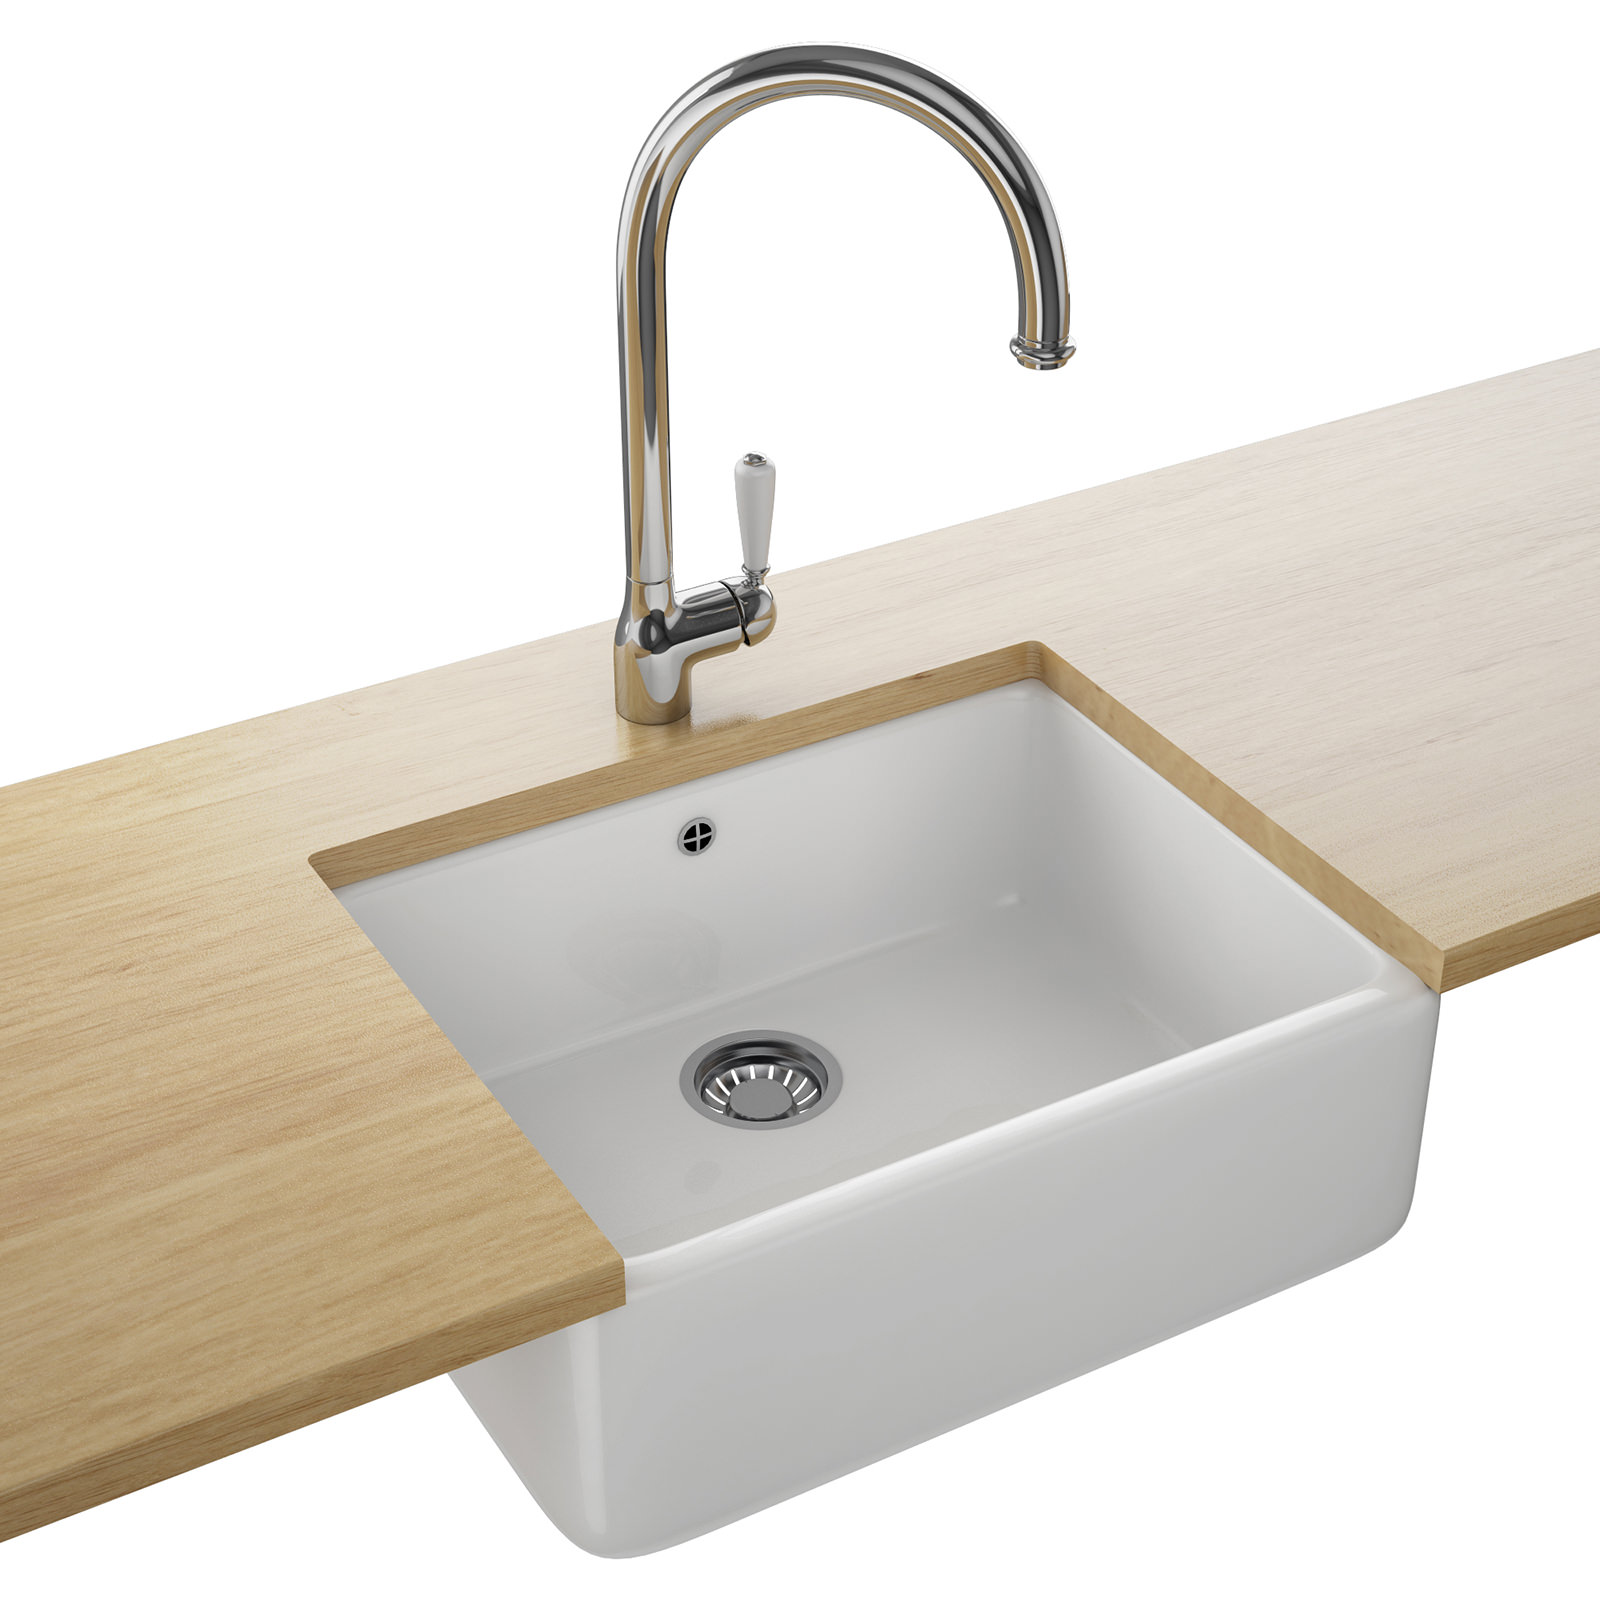 Franke belfast designer pack vbk 710 ceramic white kitchen sink and tap - Designer sink image ...